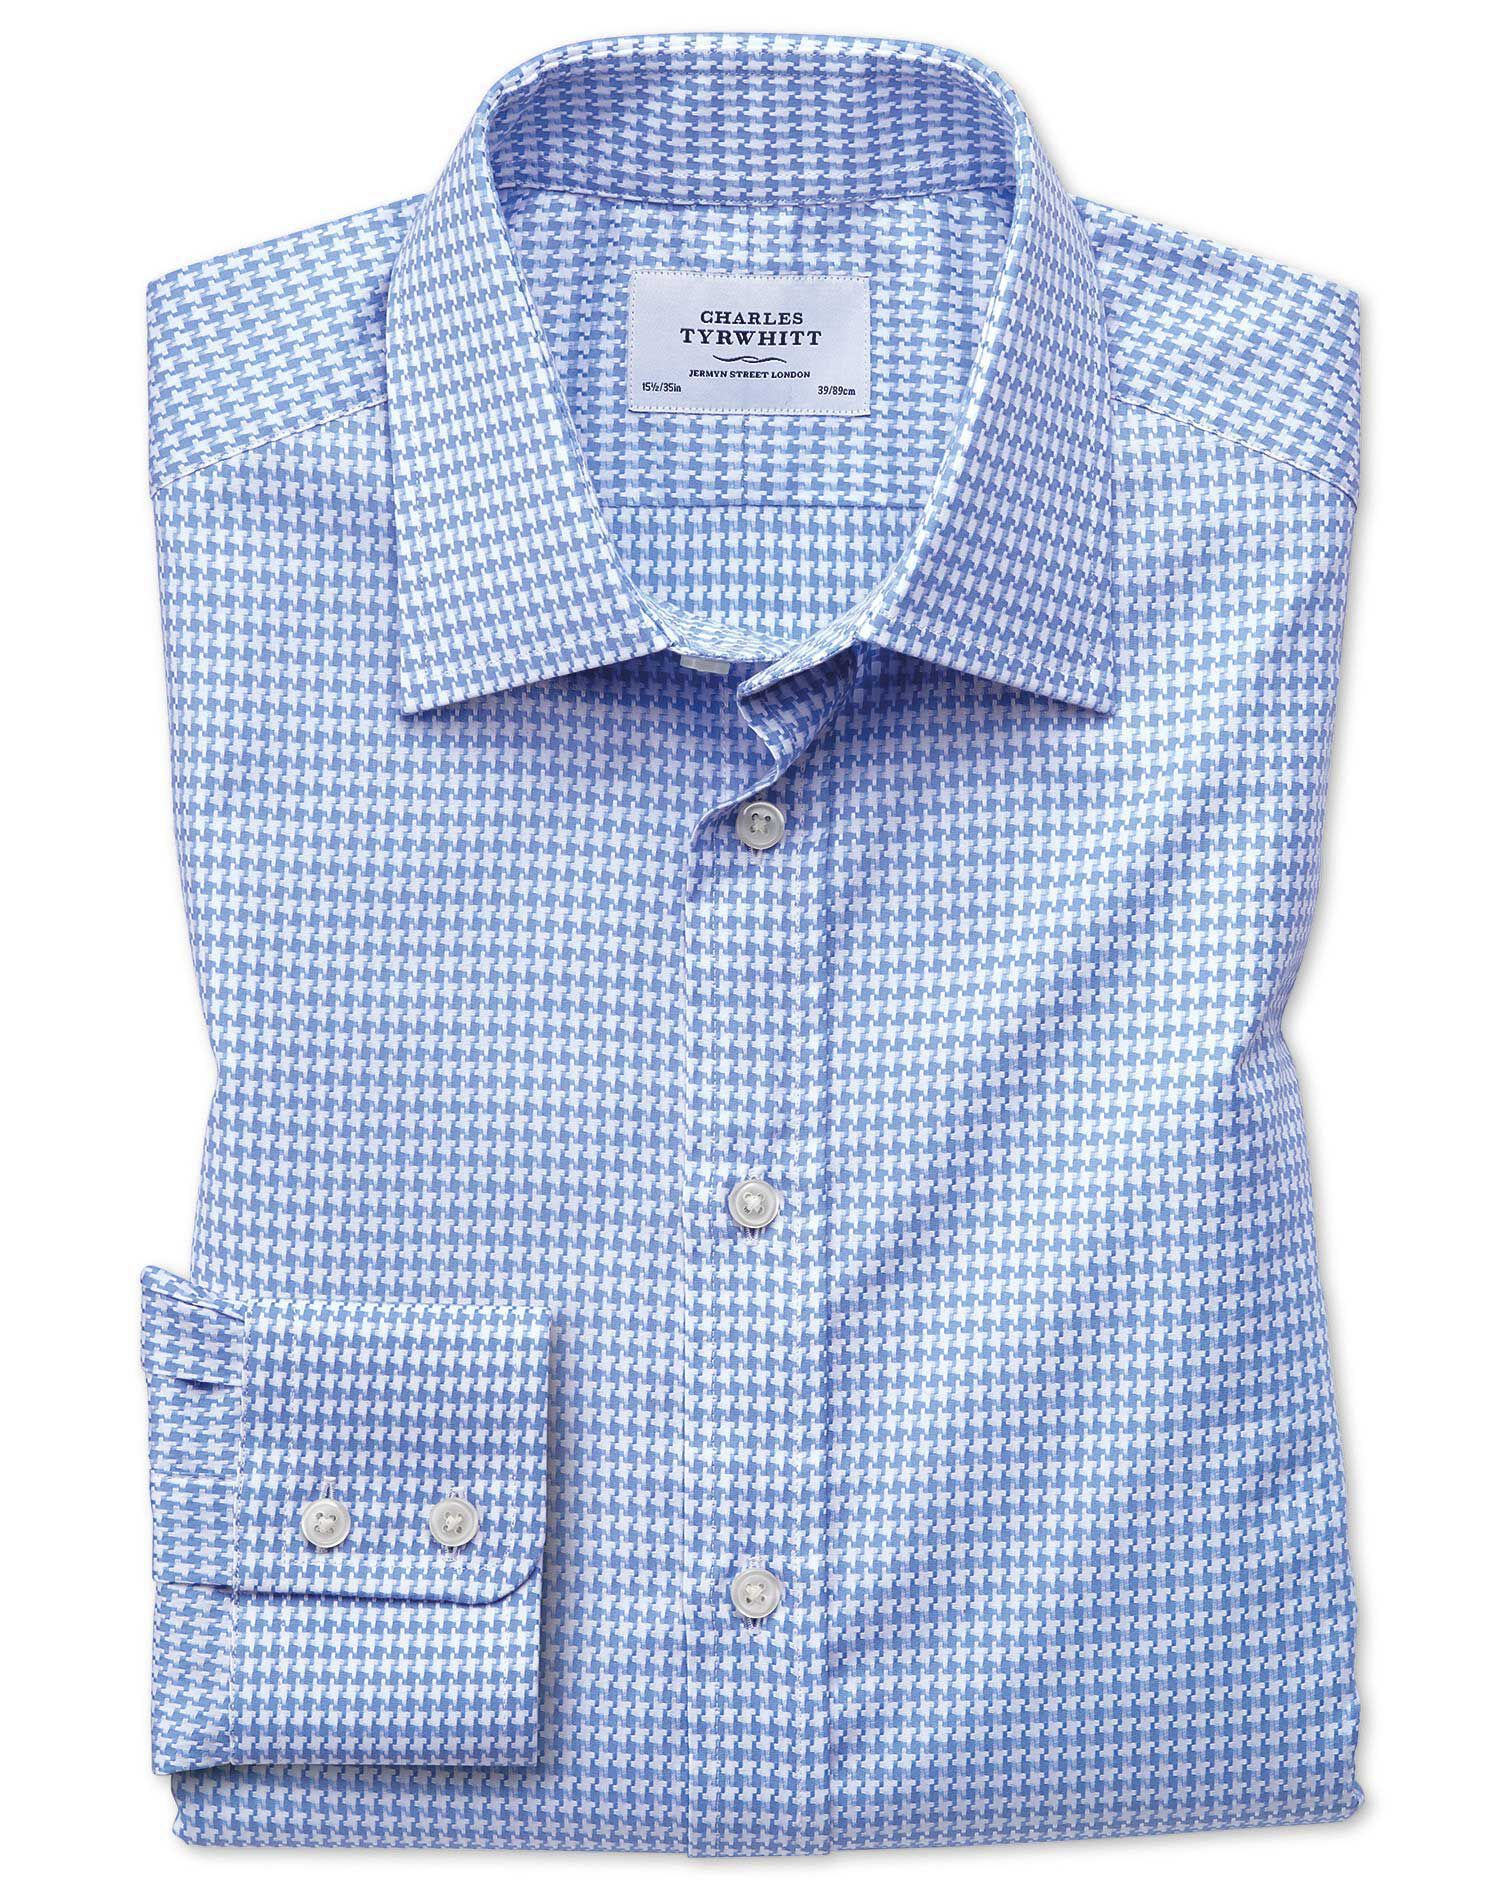 Classic Fit Large Puppytooth Sky Blue Cotton Formal Shirt Single Cuff Size 16/34 by Charles Tyrwhitt